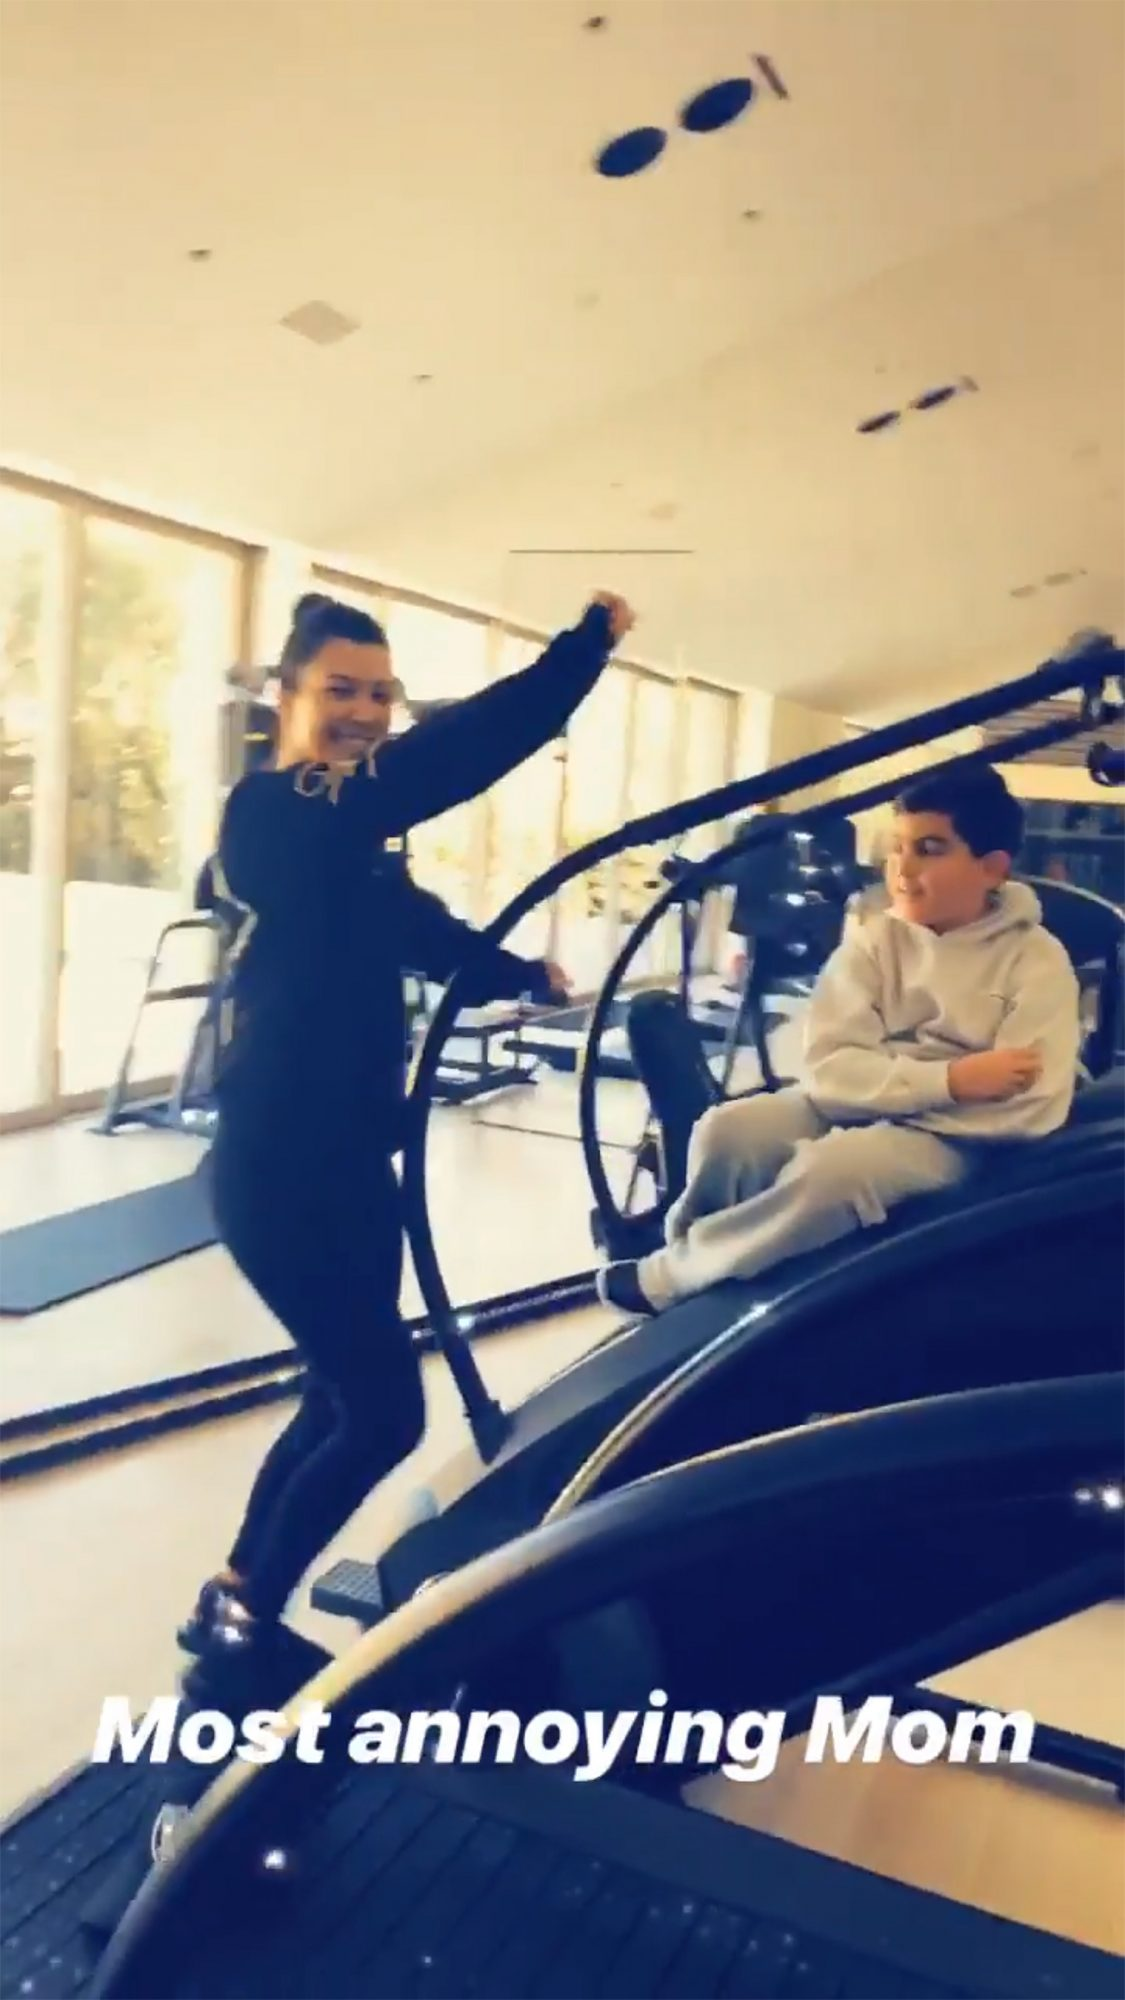 """When you're 9, you love your mom but she can sometimes be... embarrassing. That's how Mason felt when Kardashian started dancing to Tyga's song """"Taste"""" on a StairMaster as he sat nearby.                             Aunt Khloé, who was capturing the whole """"annoying"""" situation on Instagram stories, yelled, """"Mason, moms dance too!"""" while laughing as Mason eventually bolted from his spot and ran out of the room."""